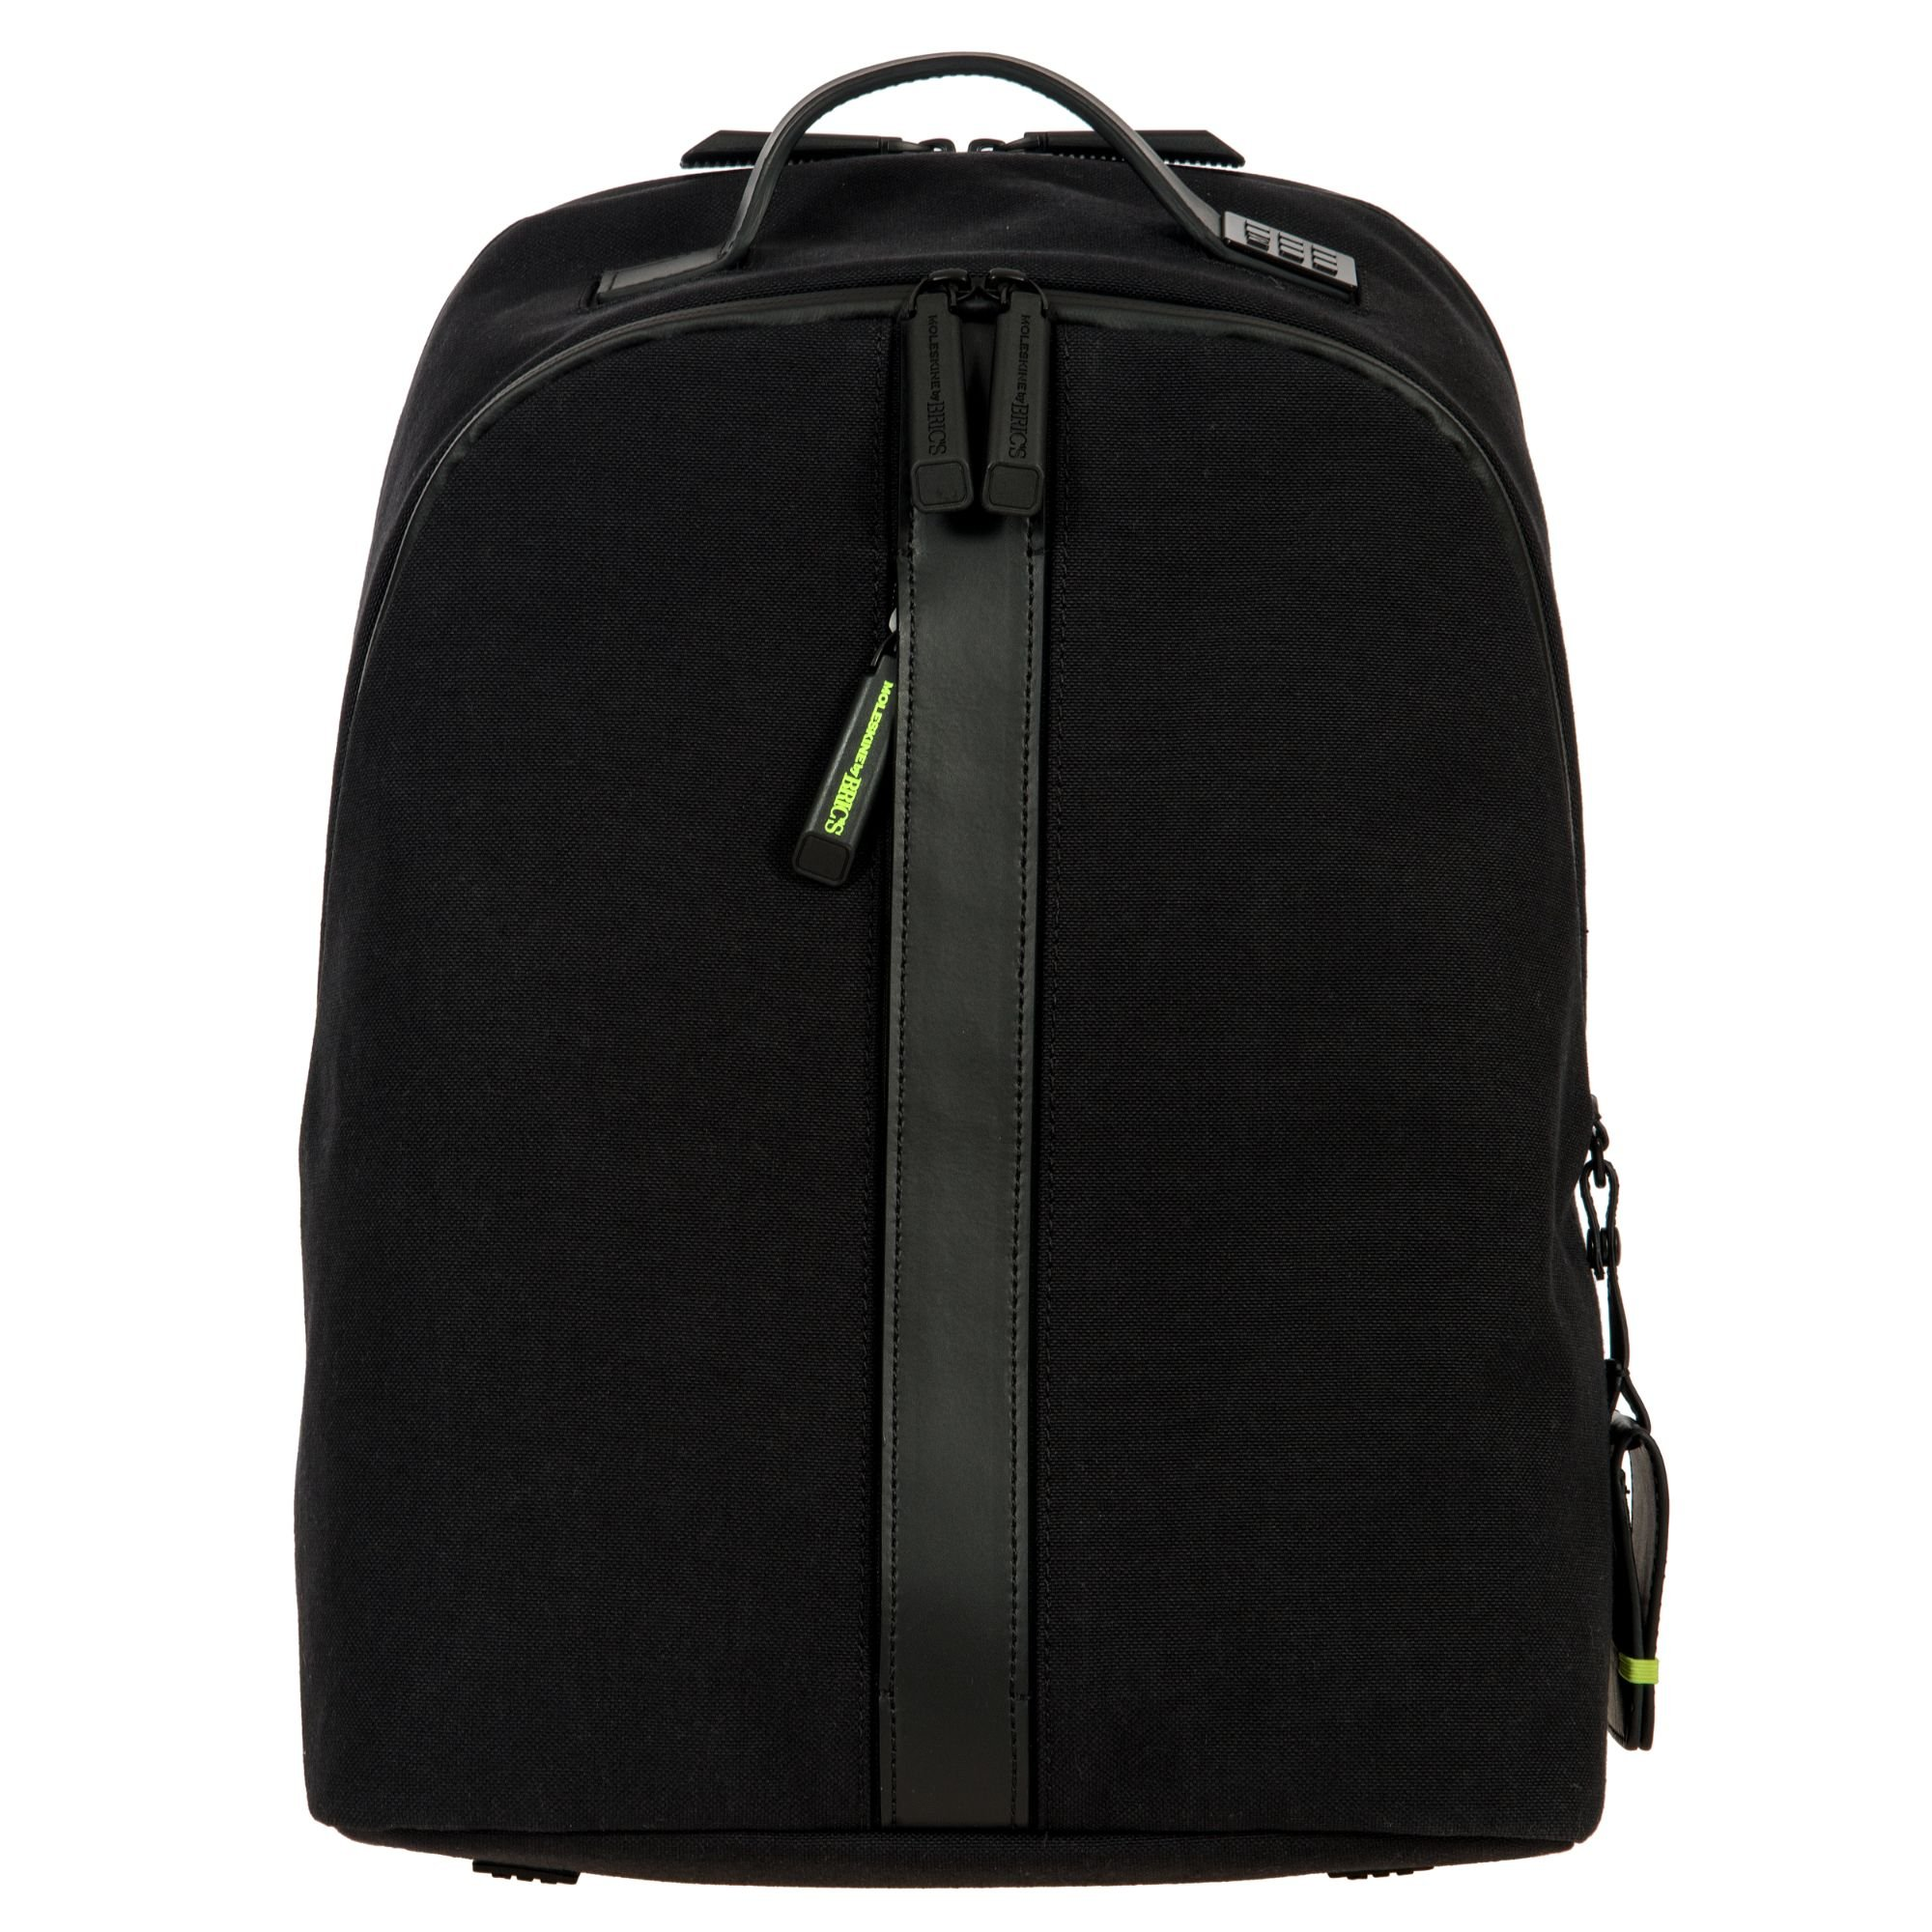 Bric's Men's Moleskine Classic Tablet Business Laptop Backpack, Black, One Size by Bric's